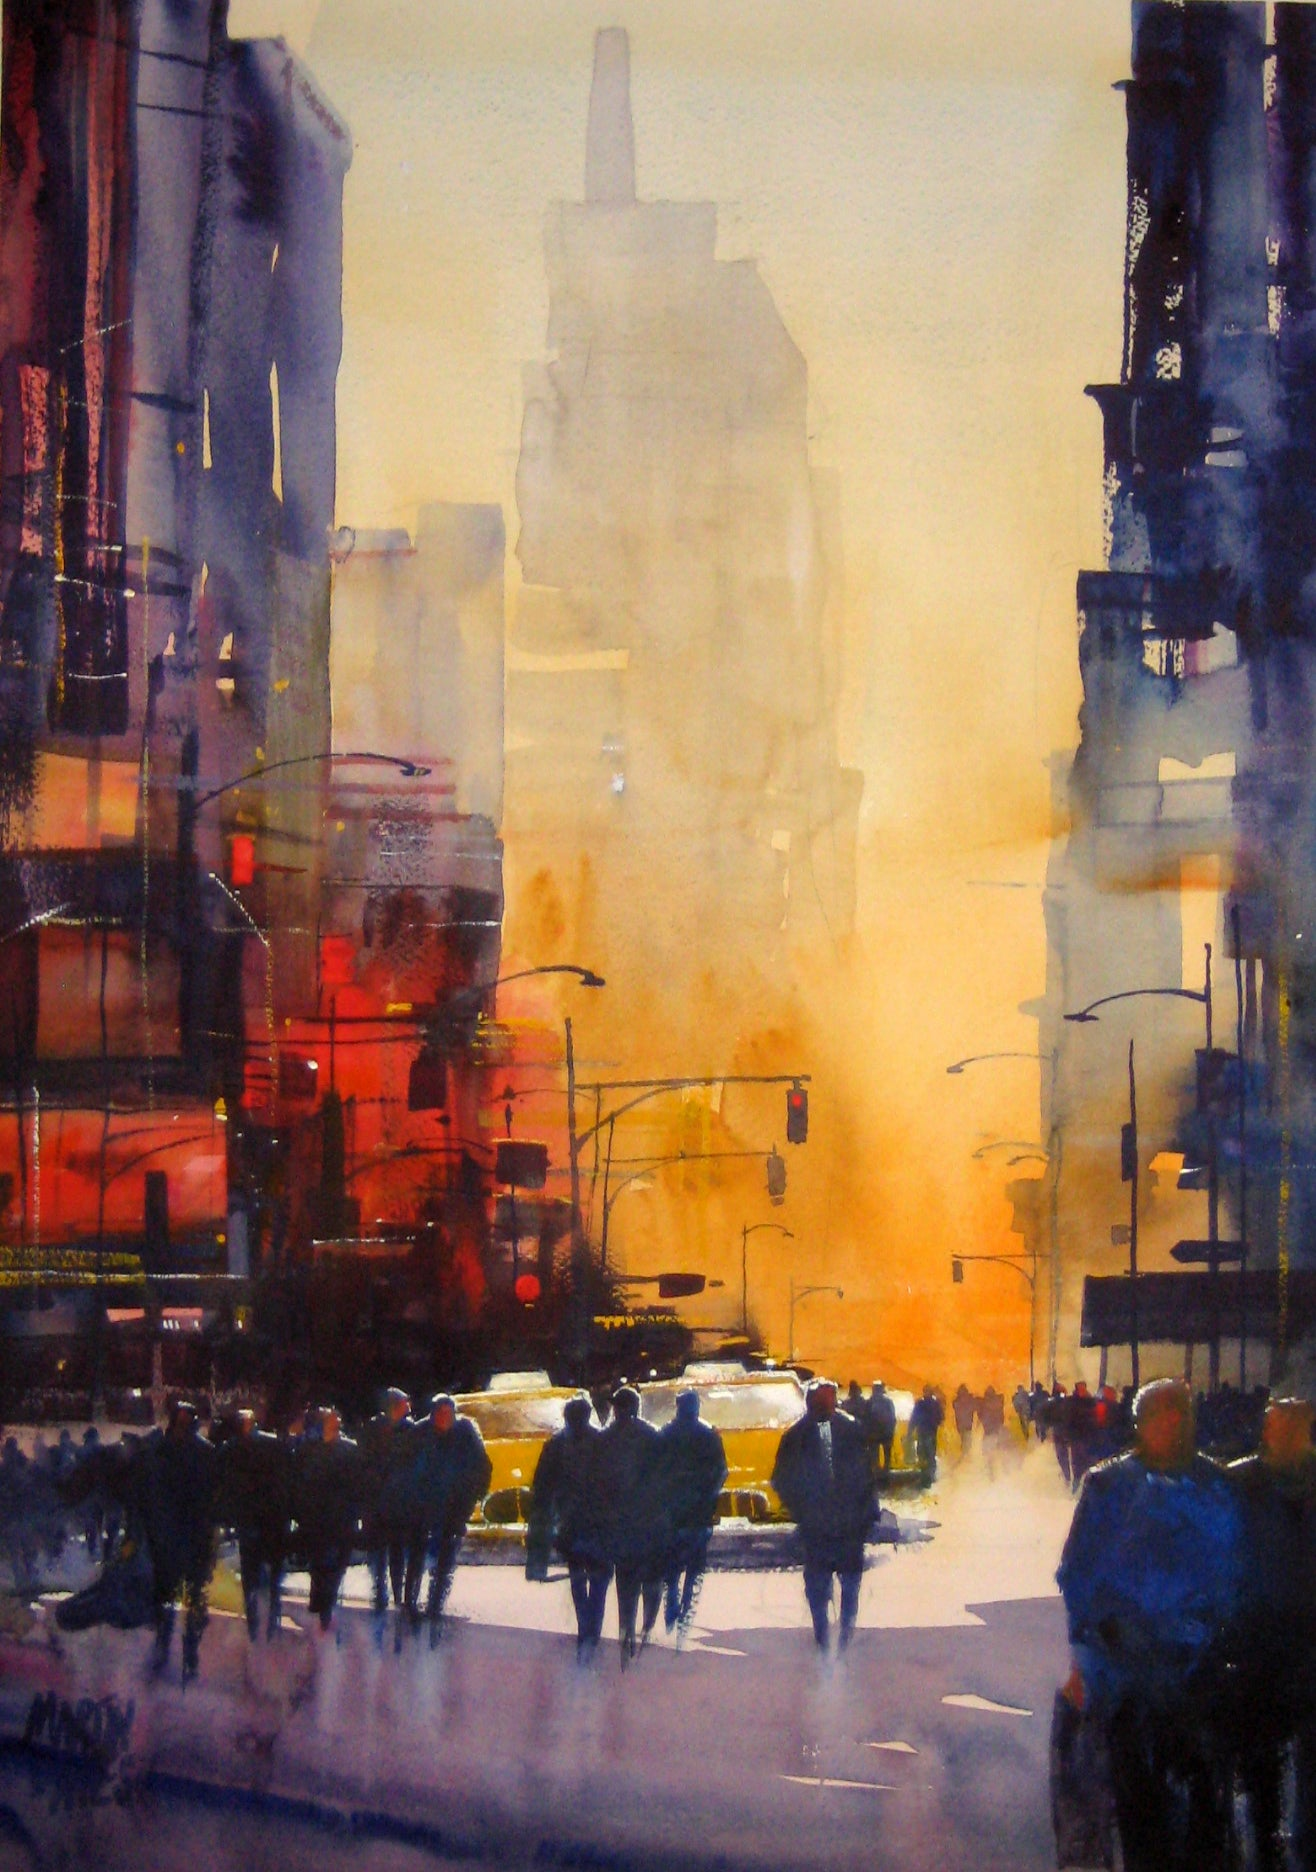 New York Haze . Original watercolour by Martin Oates 48 x 68 cm 88sale price £420** (was £550)